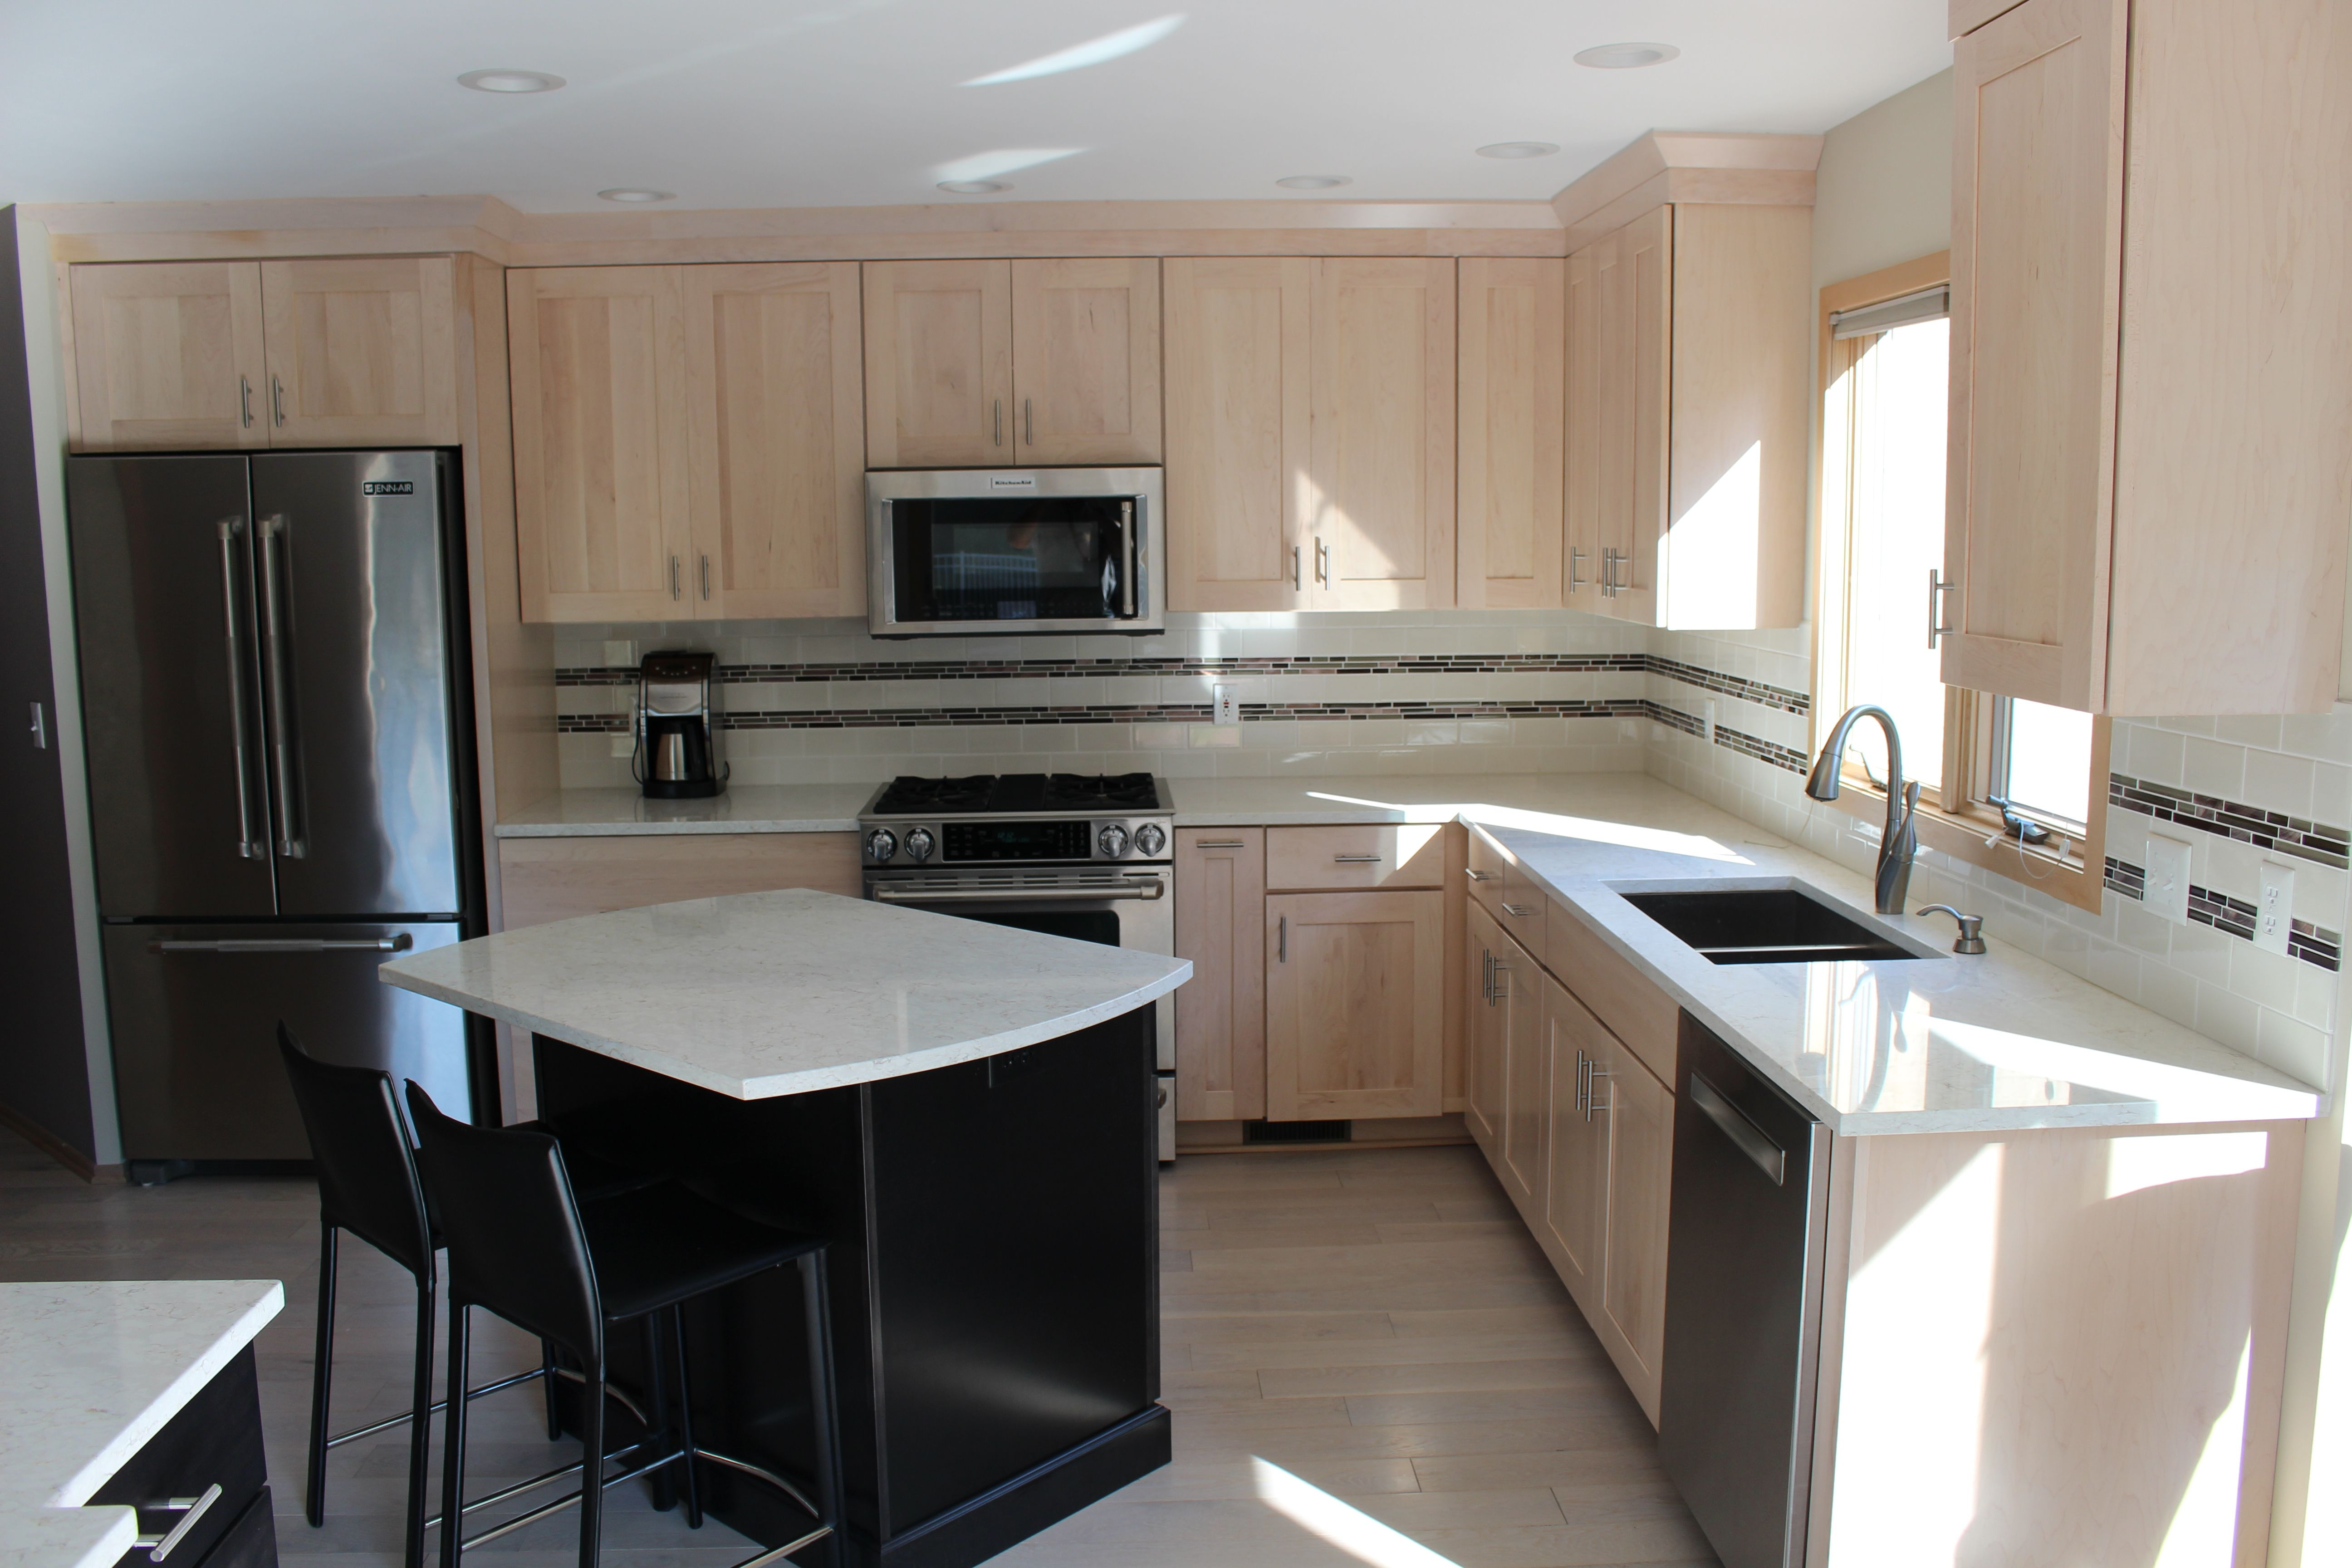 Spectacular kitchen remodel. Maple cabinets with quartz ... on Maple Kitchen Cabinets With Quartz Countertops  id=24954